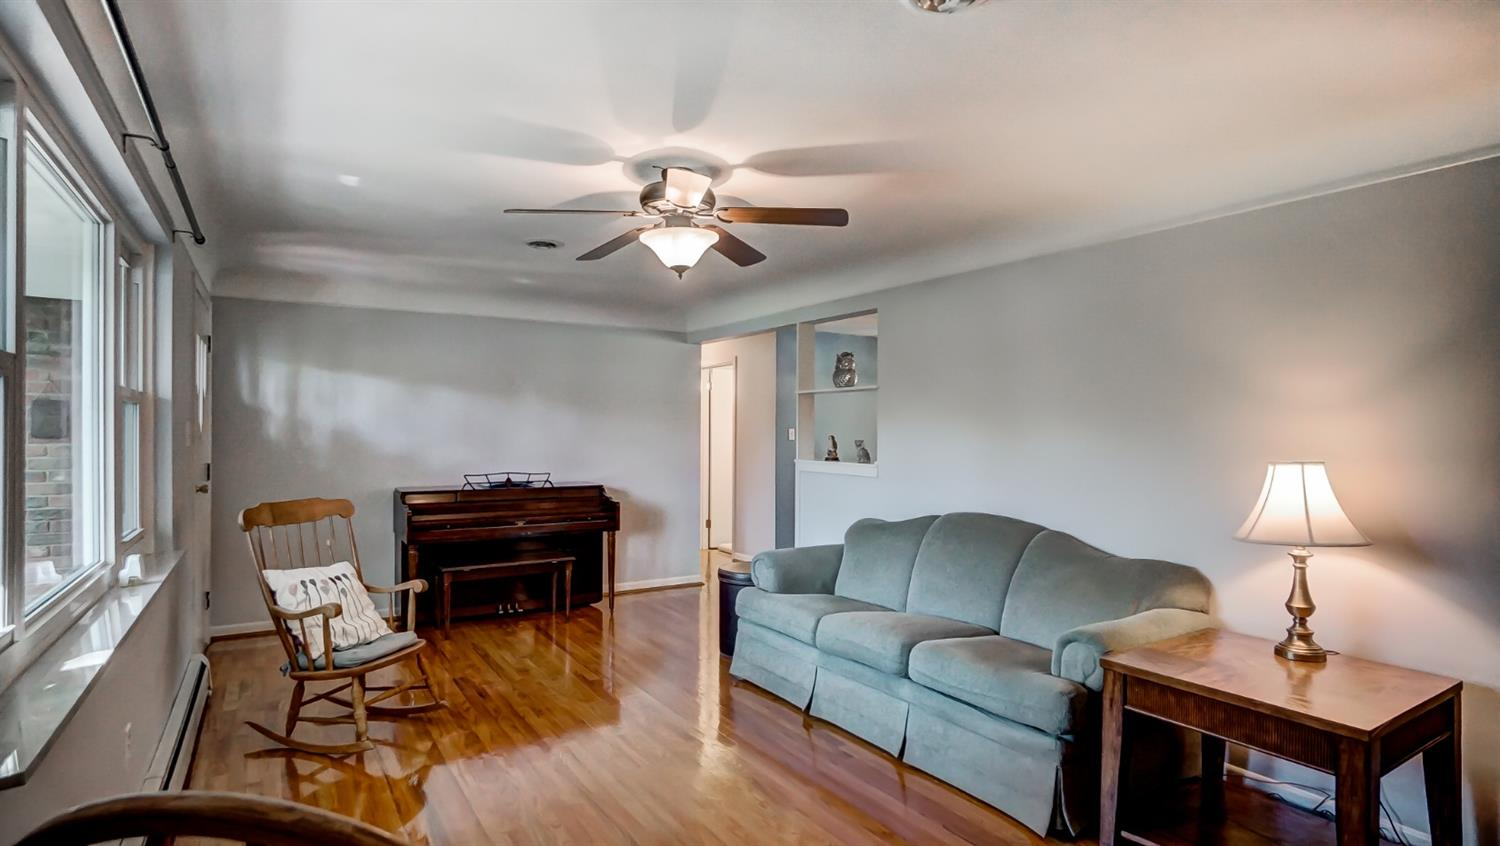 Property for sale at 9040 Saxton Drive, West Chester,  OH 45069